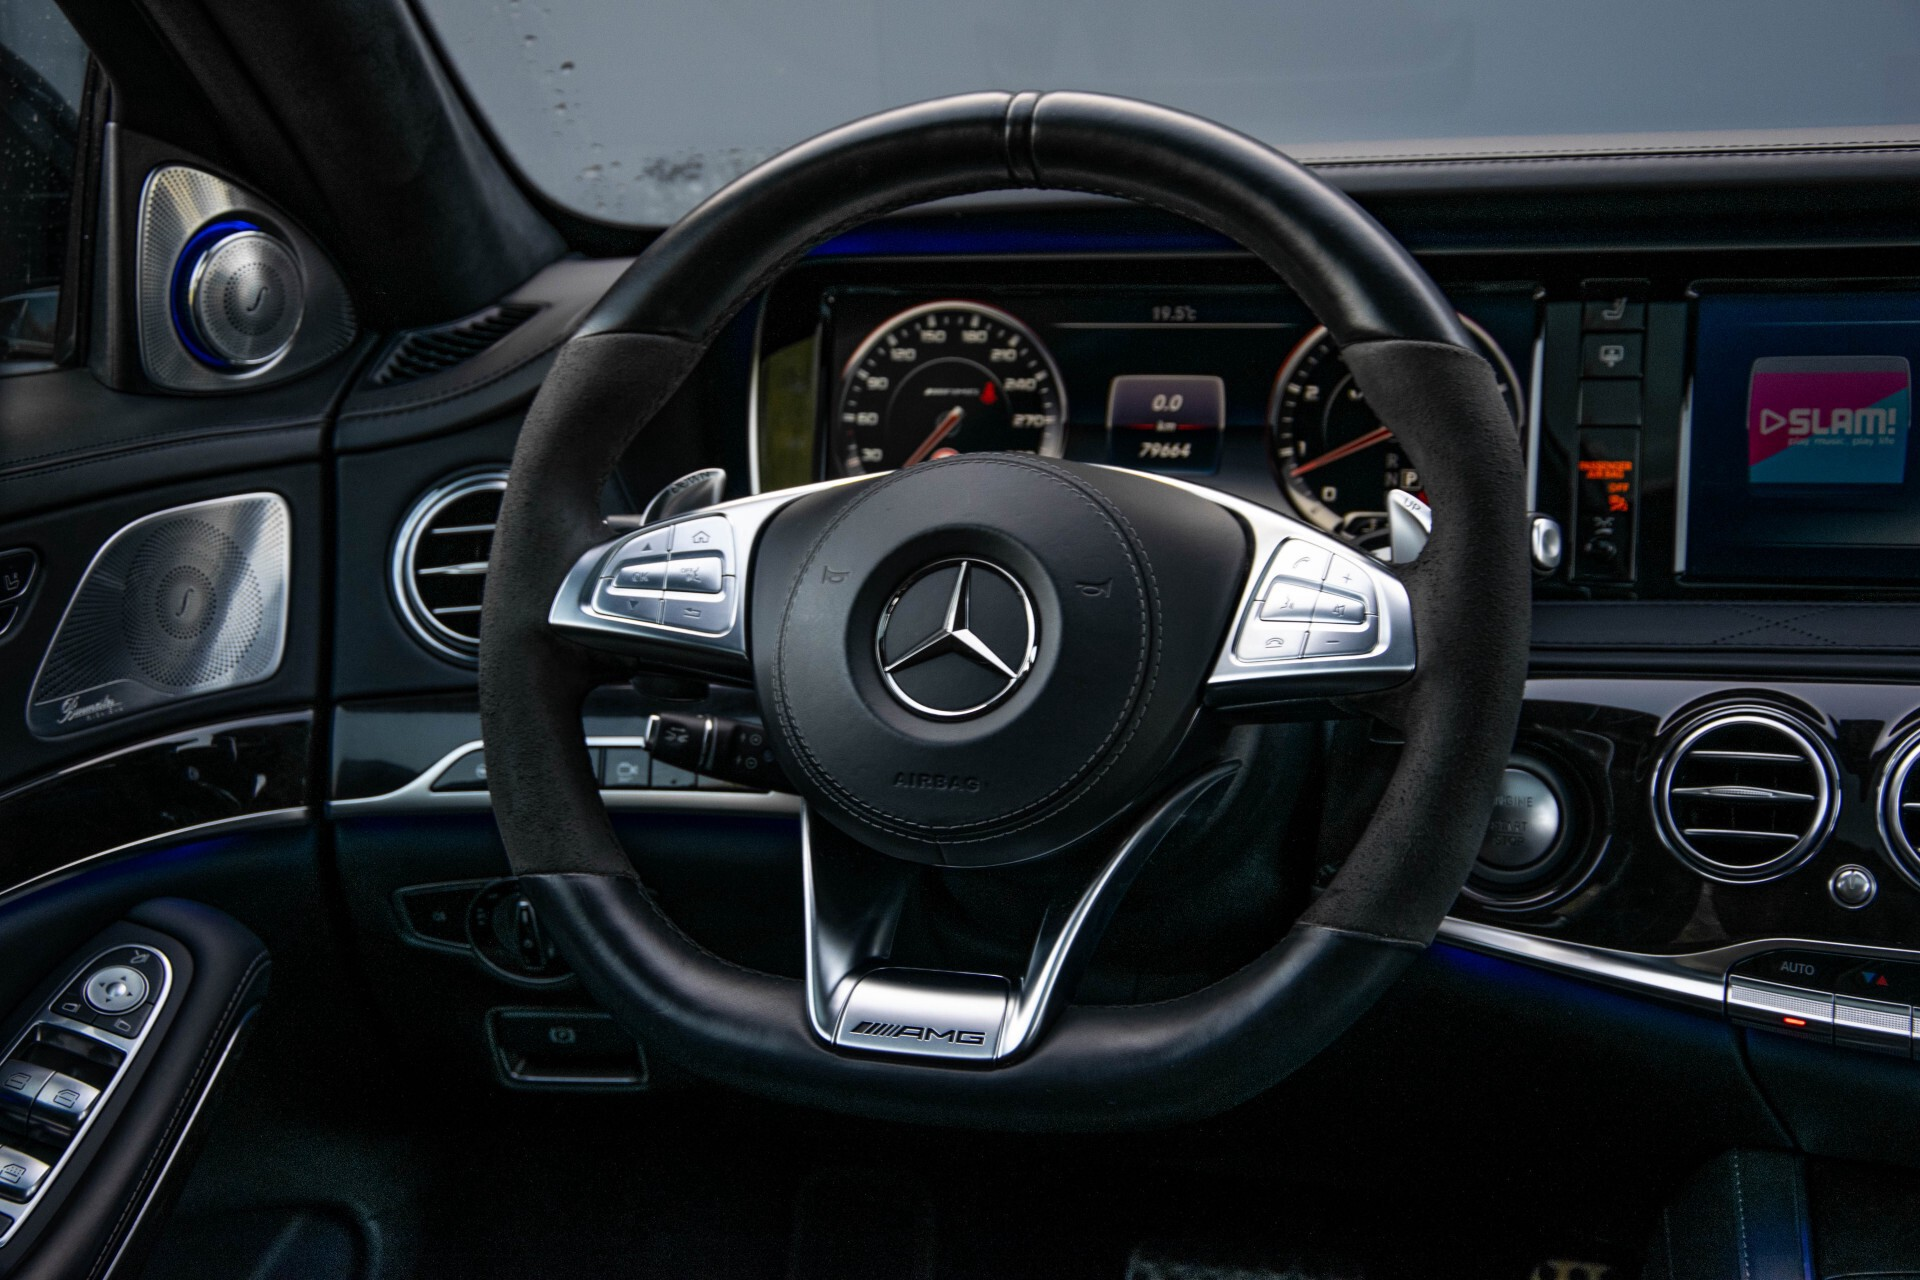 Mercedes-Benz S-Klasse 63 AMG Exclusive/Burmester High-End/Driverspack Aut7 Foto 8